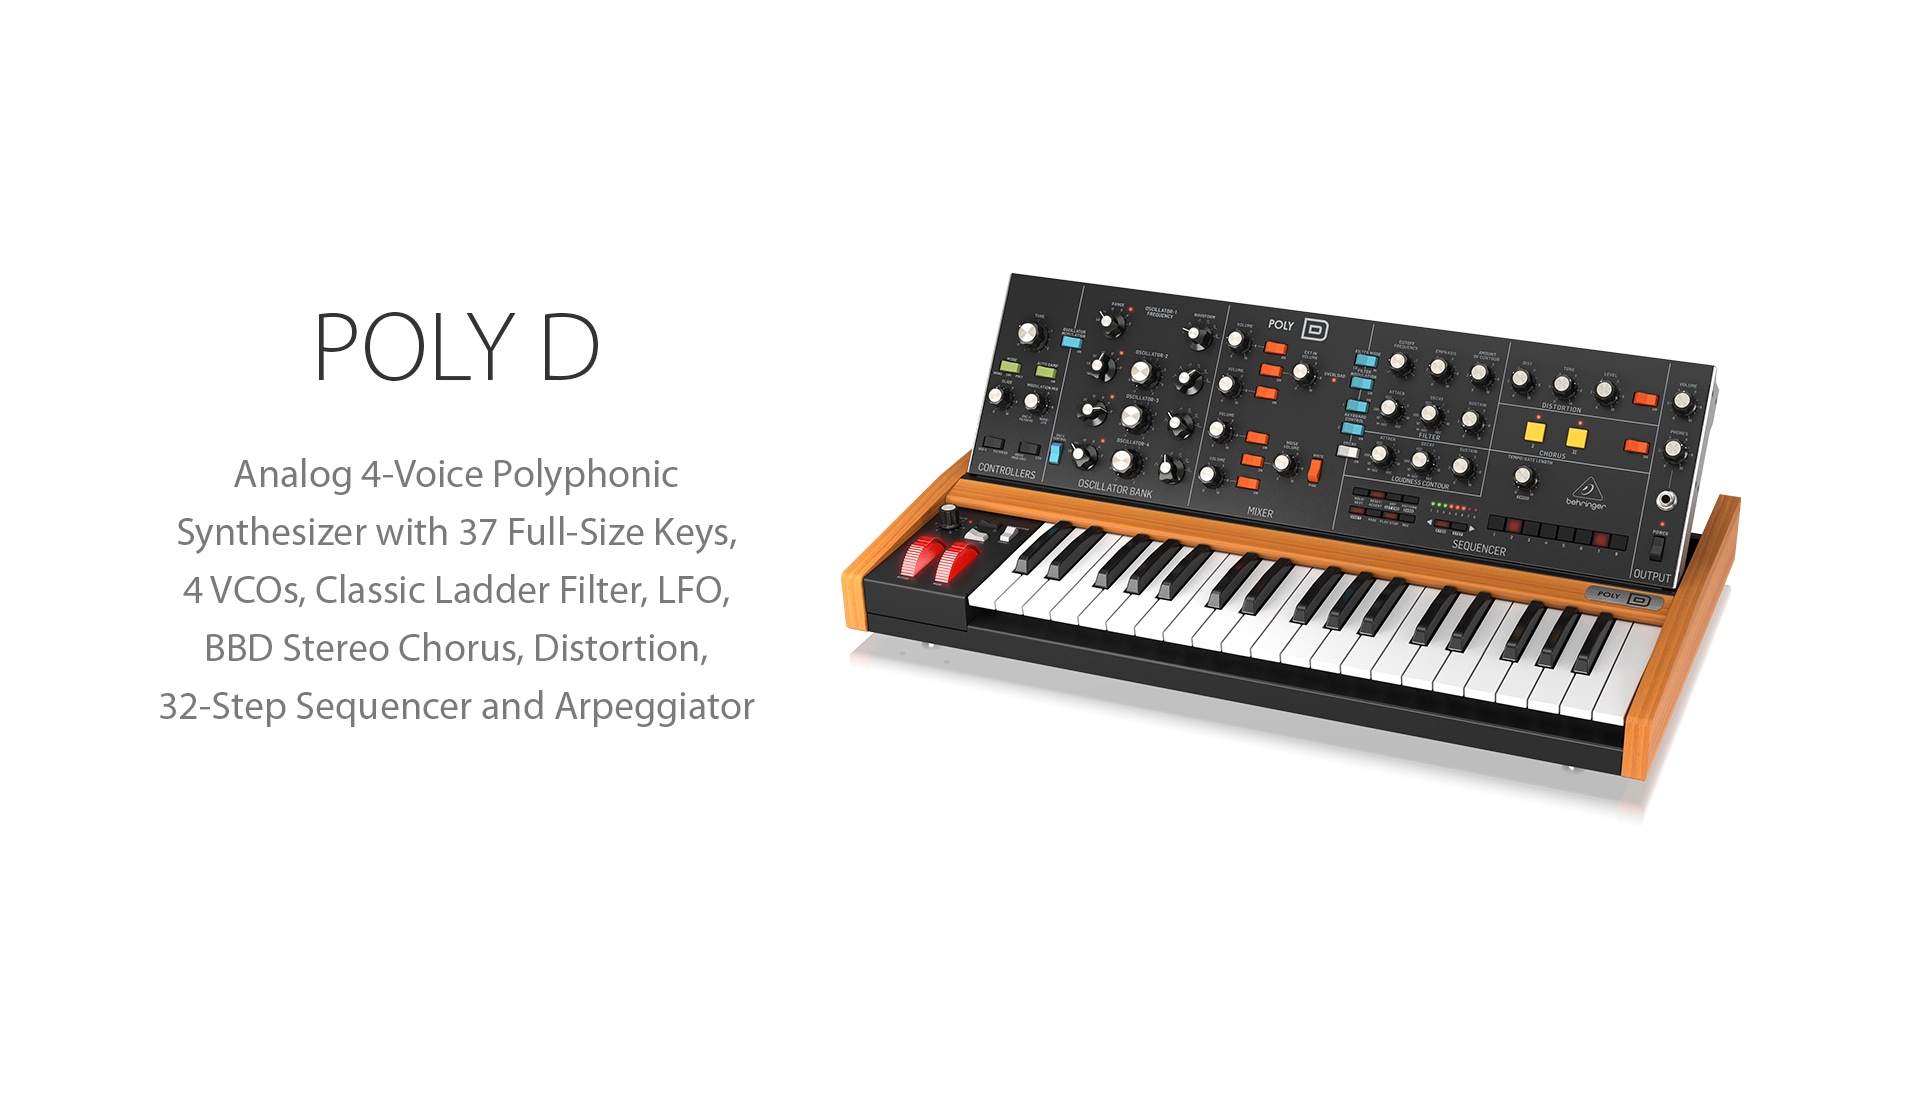 Behringer On Twitter Poly D Https T Co 1bmp02owzj Analog 4 Voice Polyphonic Synthesizer With 37 Full Size Keys 4 Vcos Classic Ladder Filter Lfo Bbd Stereo Chorus Distortion 32 Step Sequencer And Arpeggiator Behringer Polyd Analog Shop for the behringer poly d analog polyphonic synthesizer and receive free shipping on your order and the guaranteed lowest price. arpeggiator behringer polyd analog